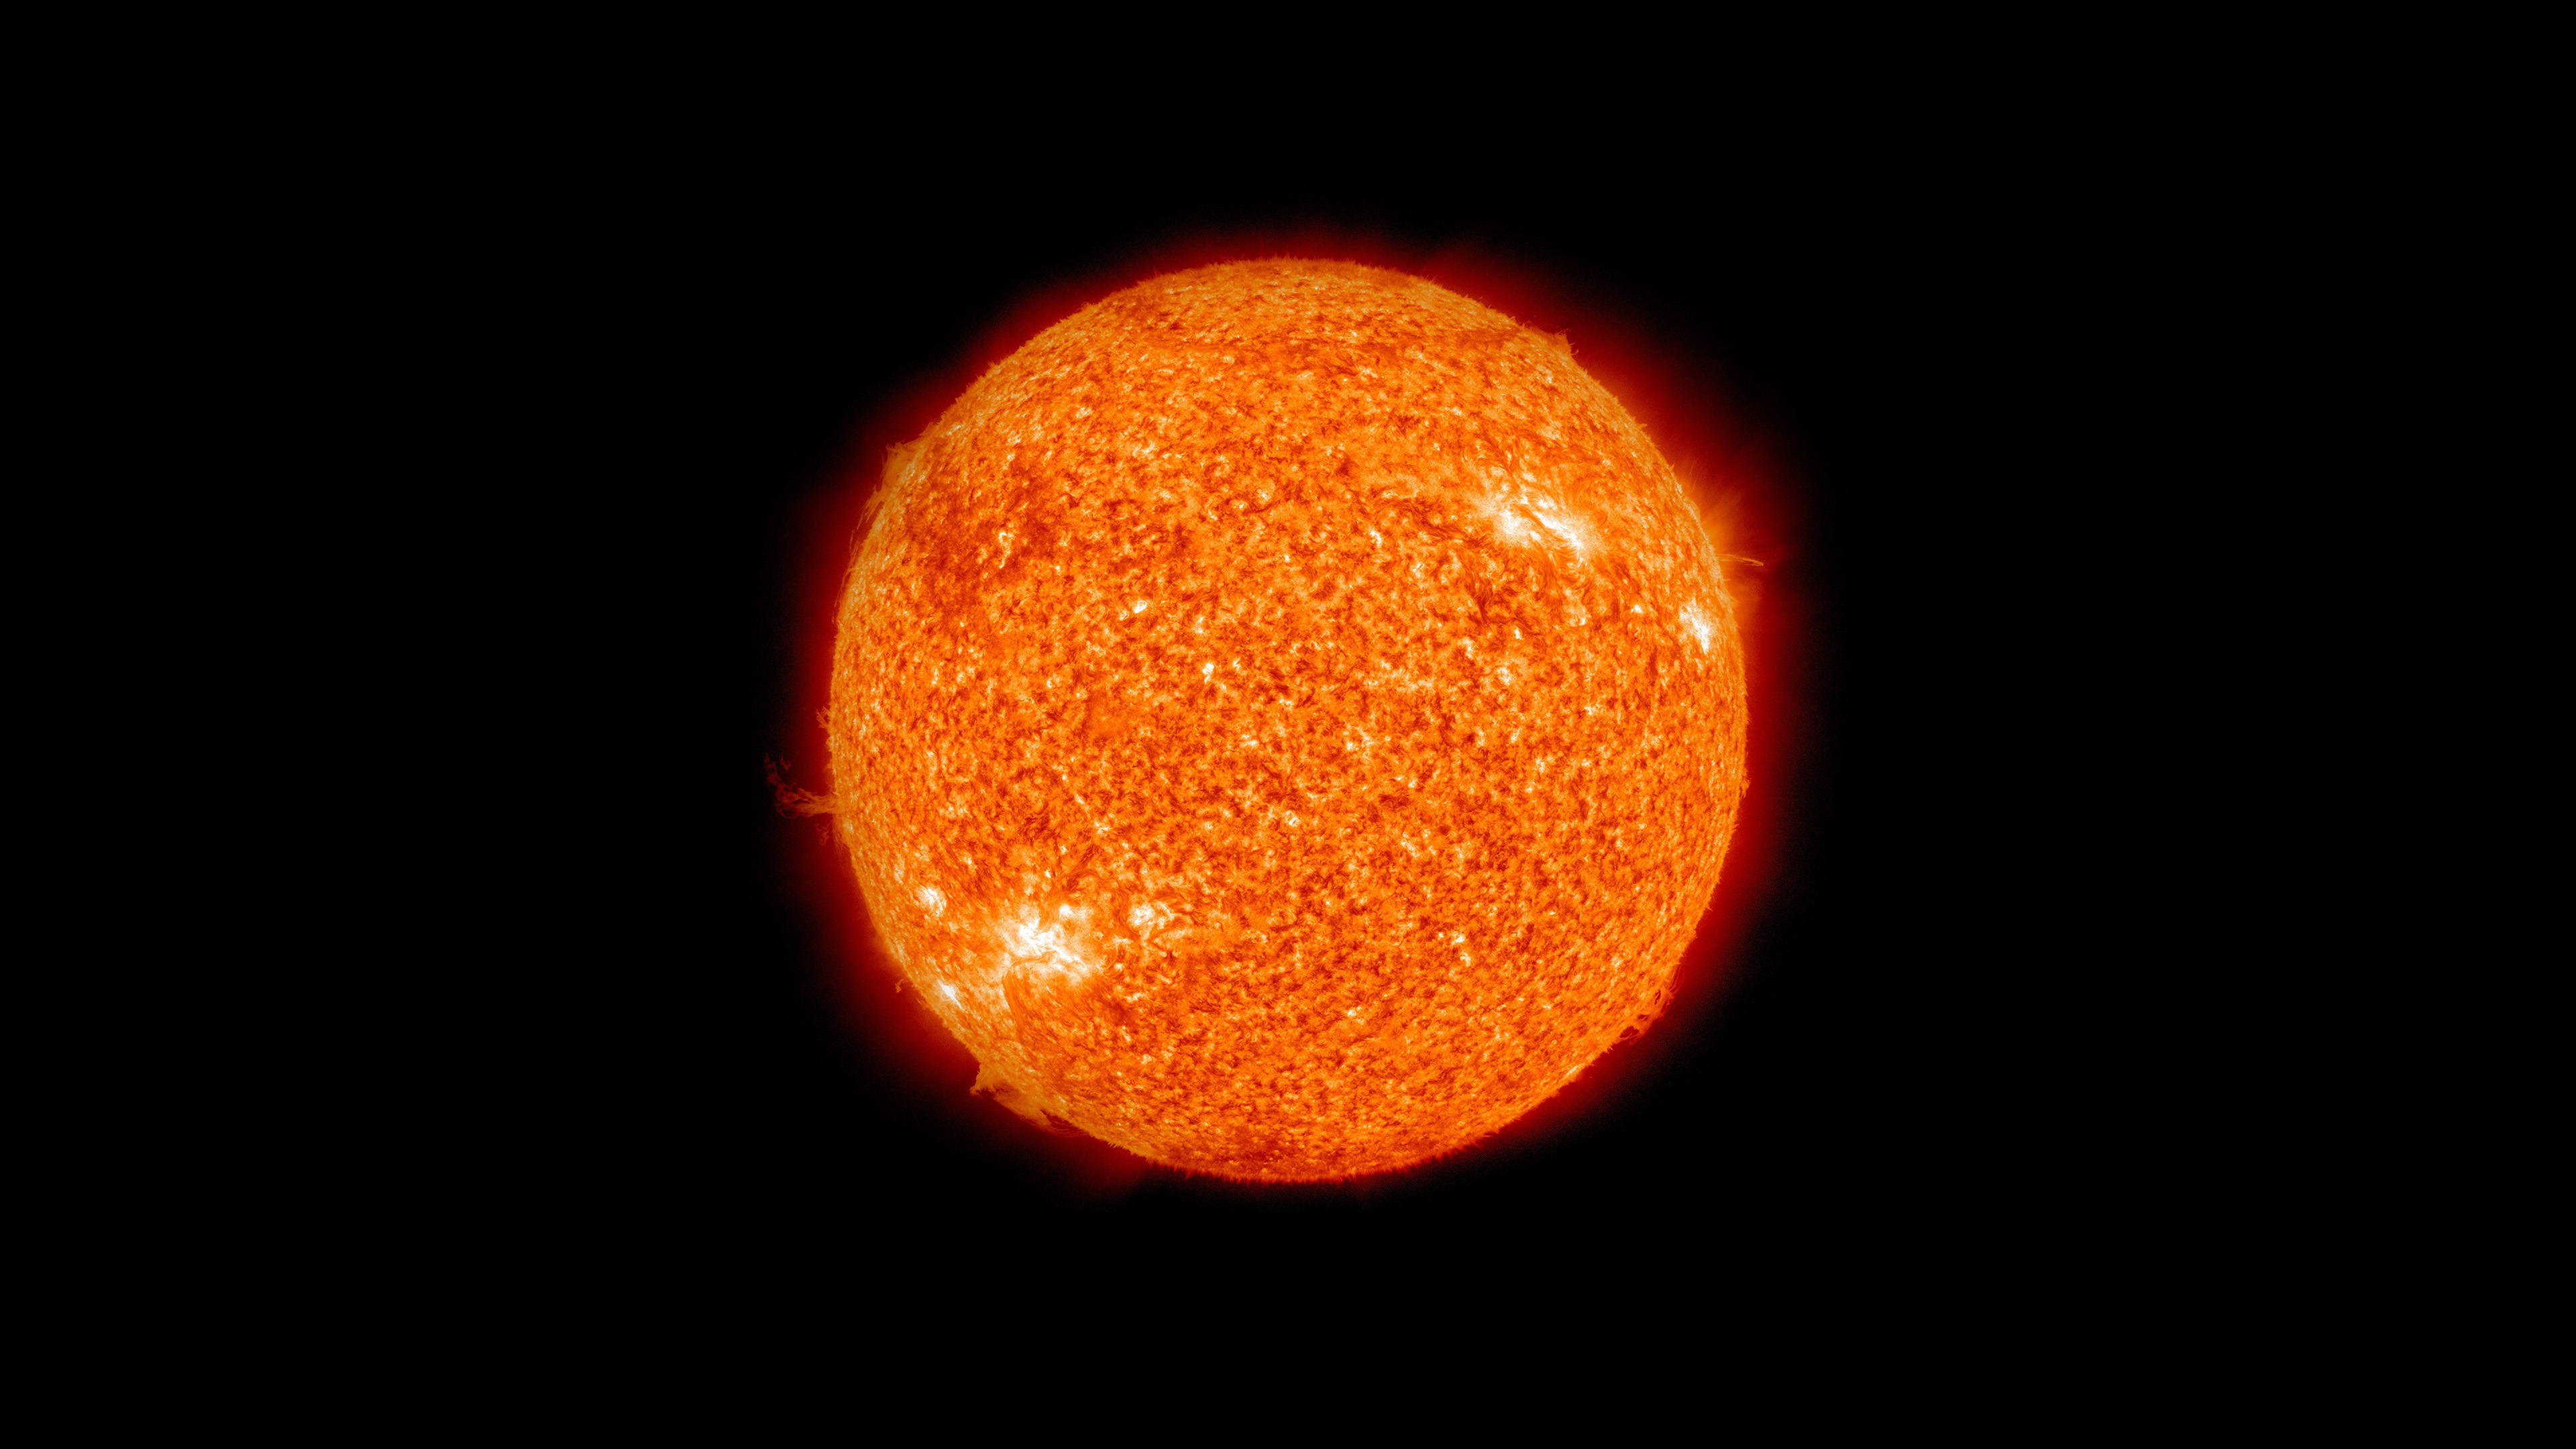 astronomy sun essay For example, the distance between the sun and earth is about 93,000,000 miles   the astronomical unit (au) represents a distance of earth's average.